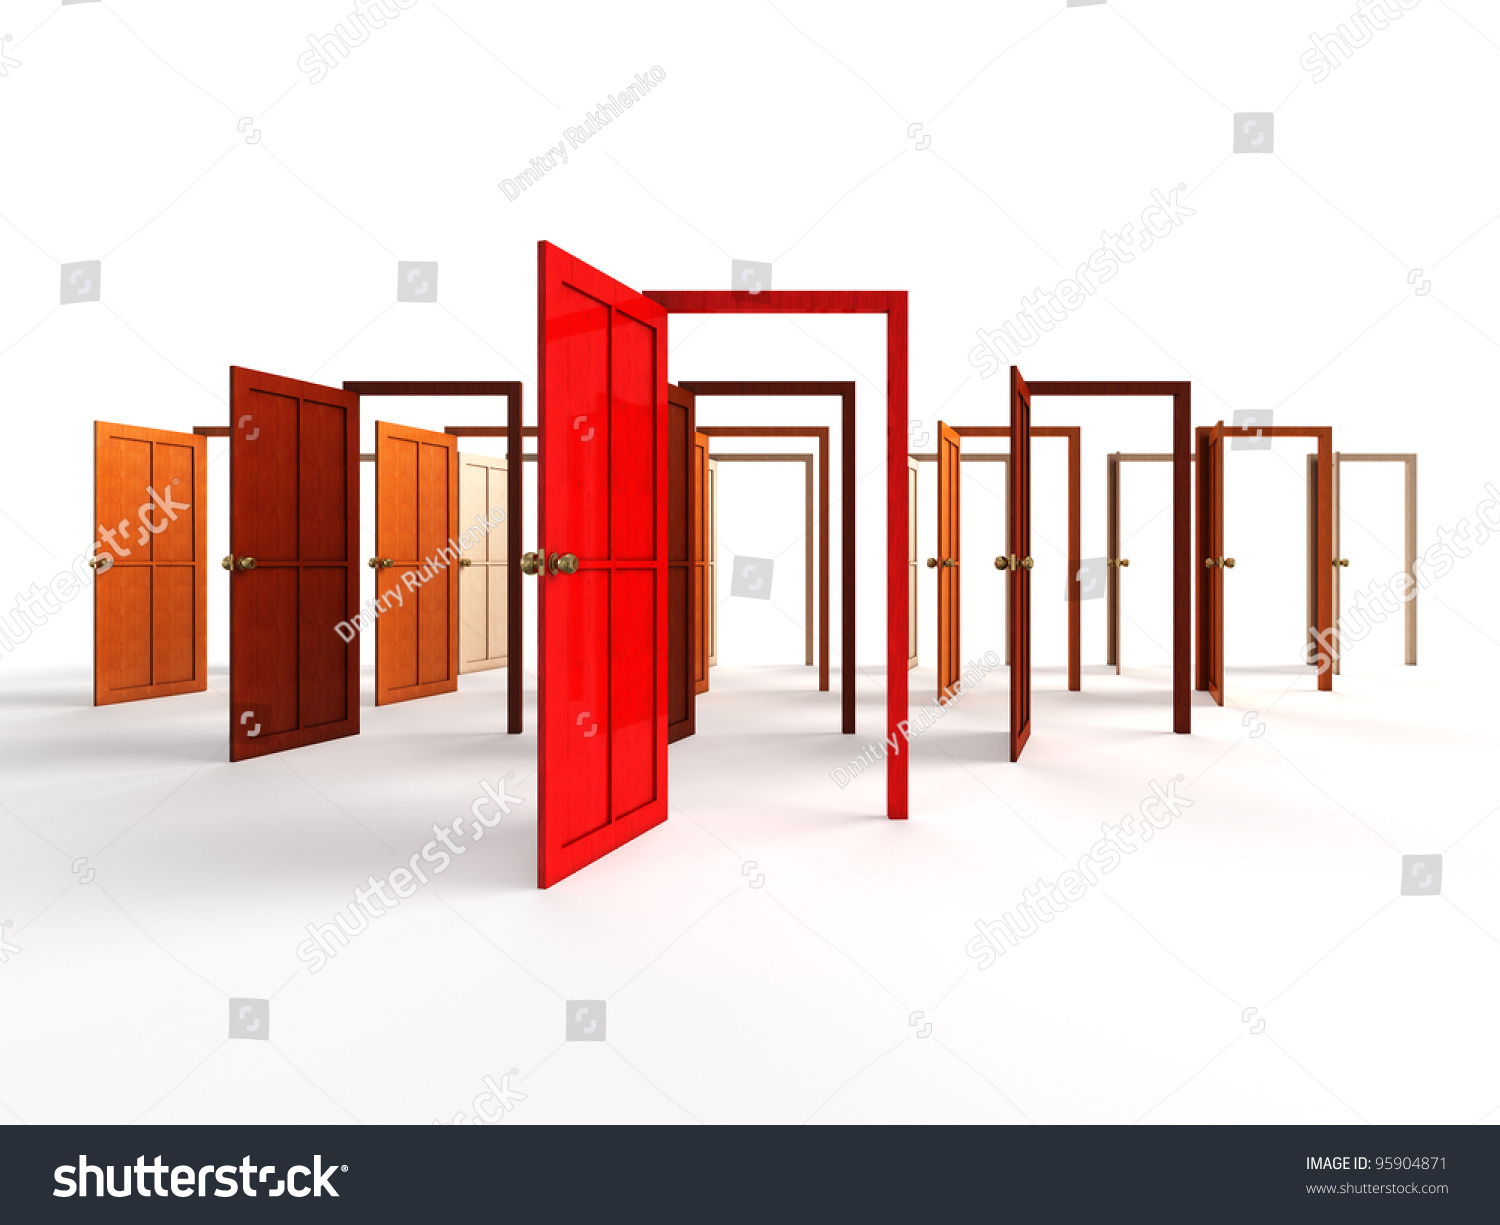 Open doors - welcome choice opportunity concept